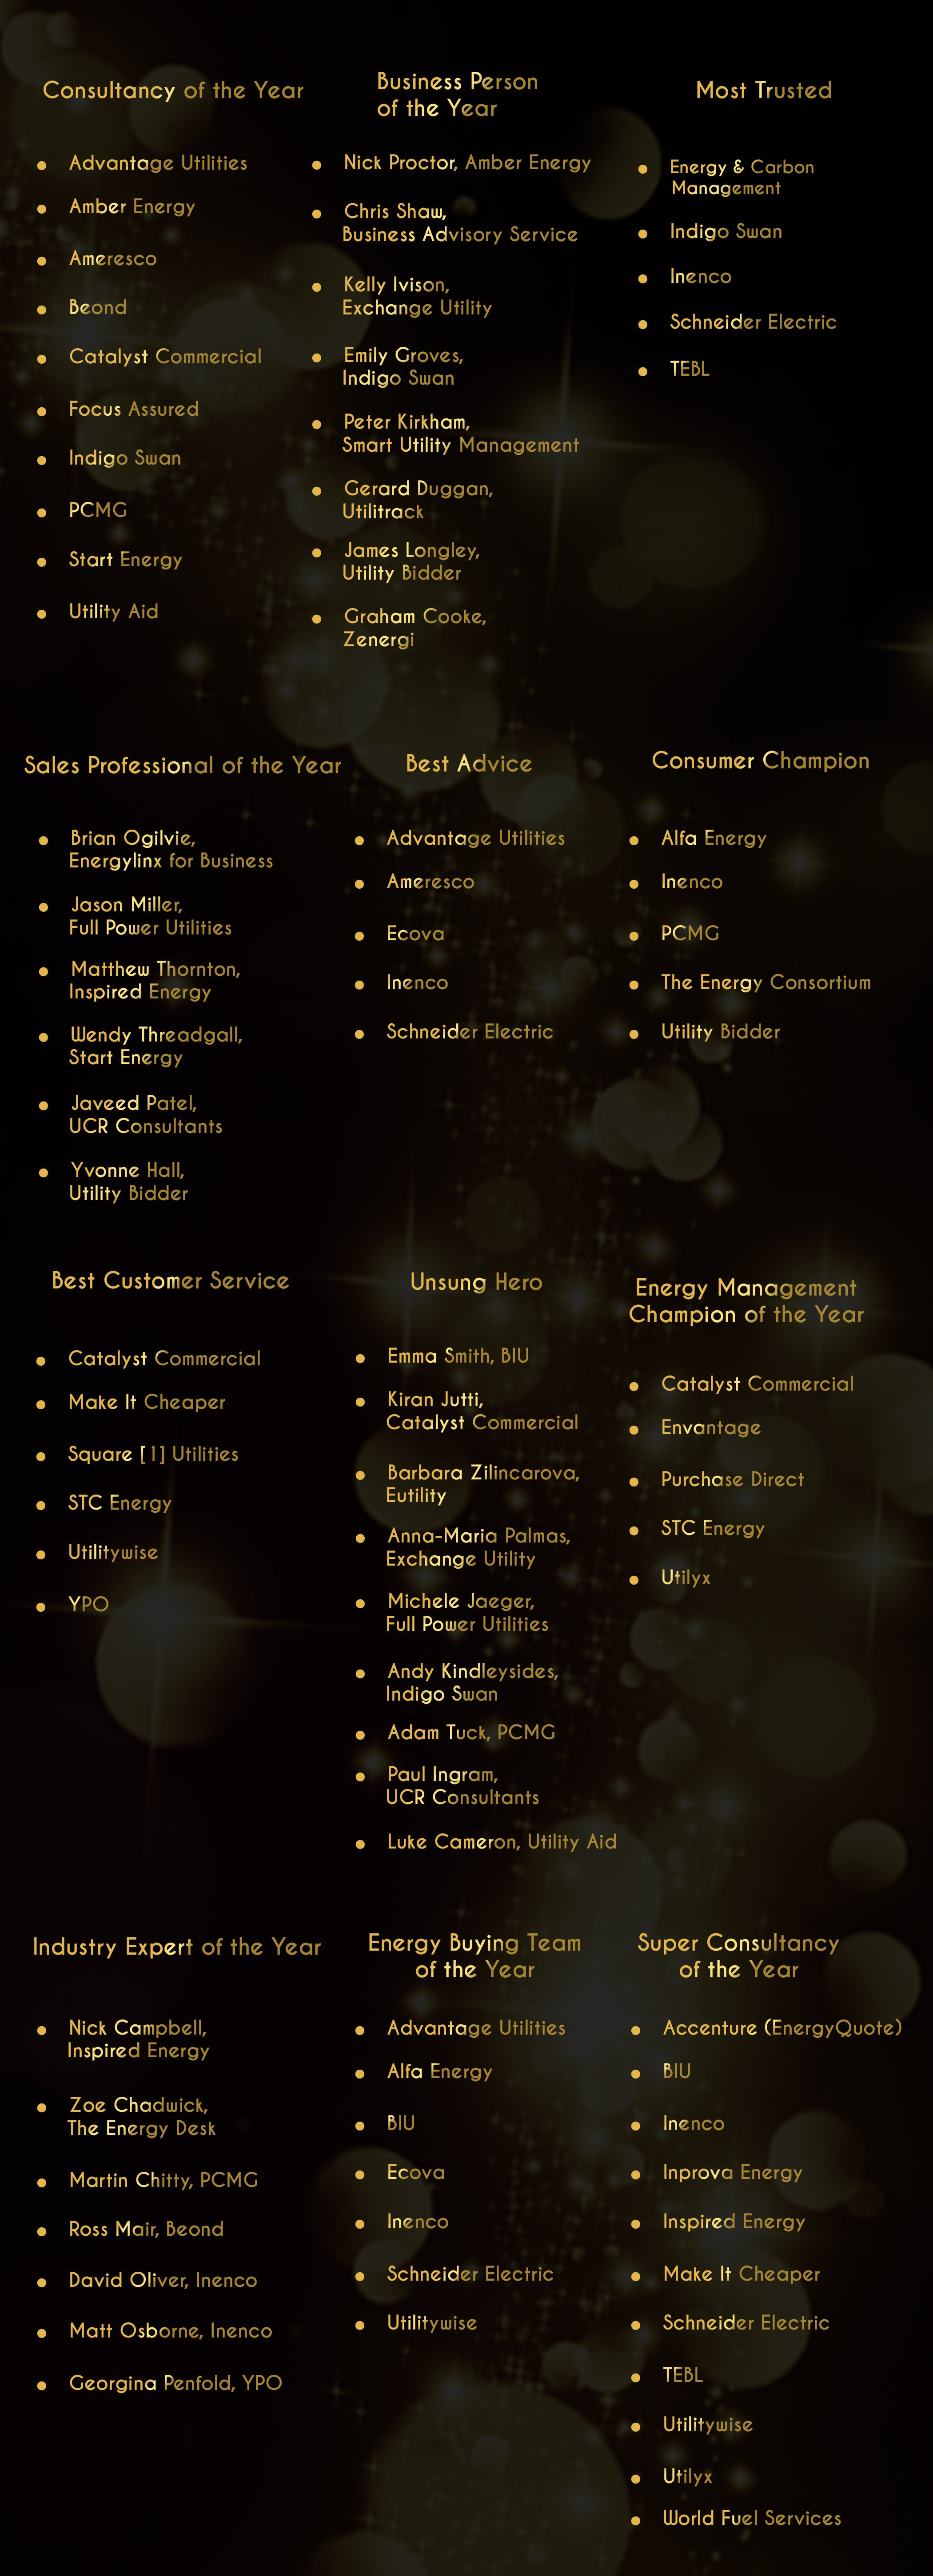 Consultancy of the Year shortlist